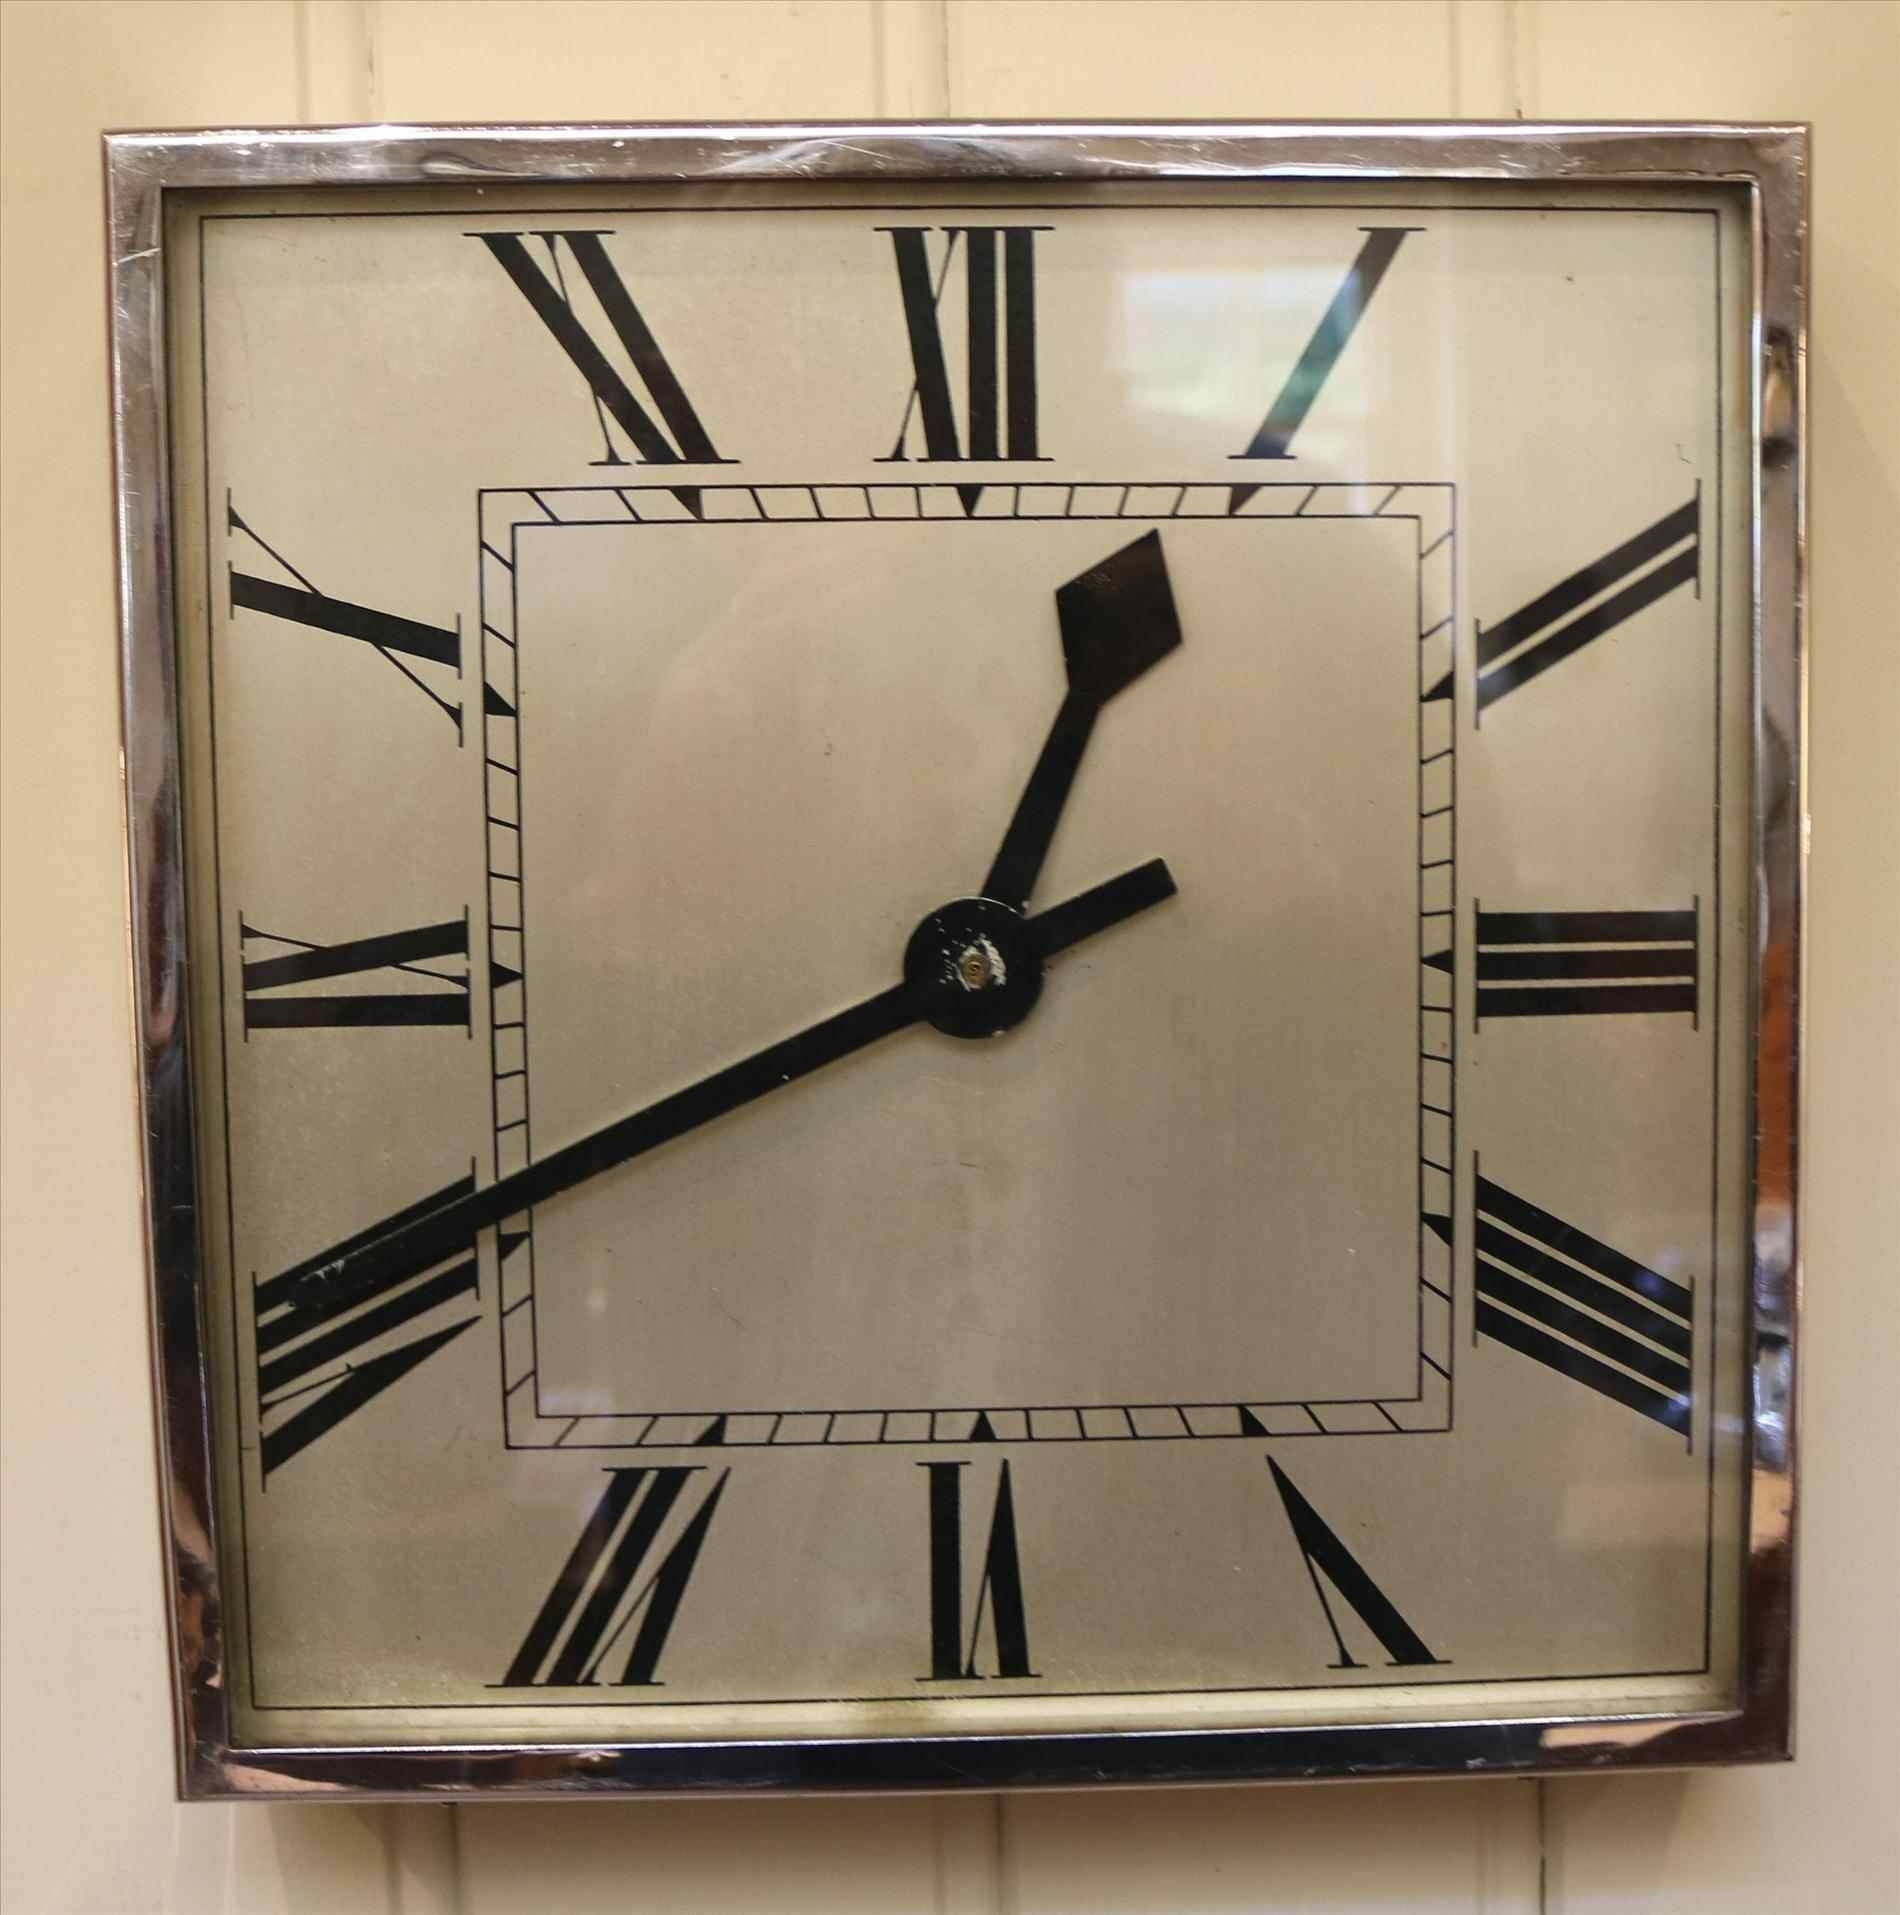 Art Deco Wall Clocks Large | Home Interior Decor Throughout Most Current Large Art Deco Wall Clocks (View 21 of 30)